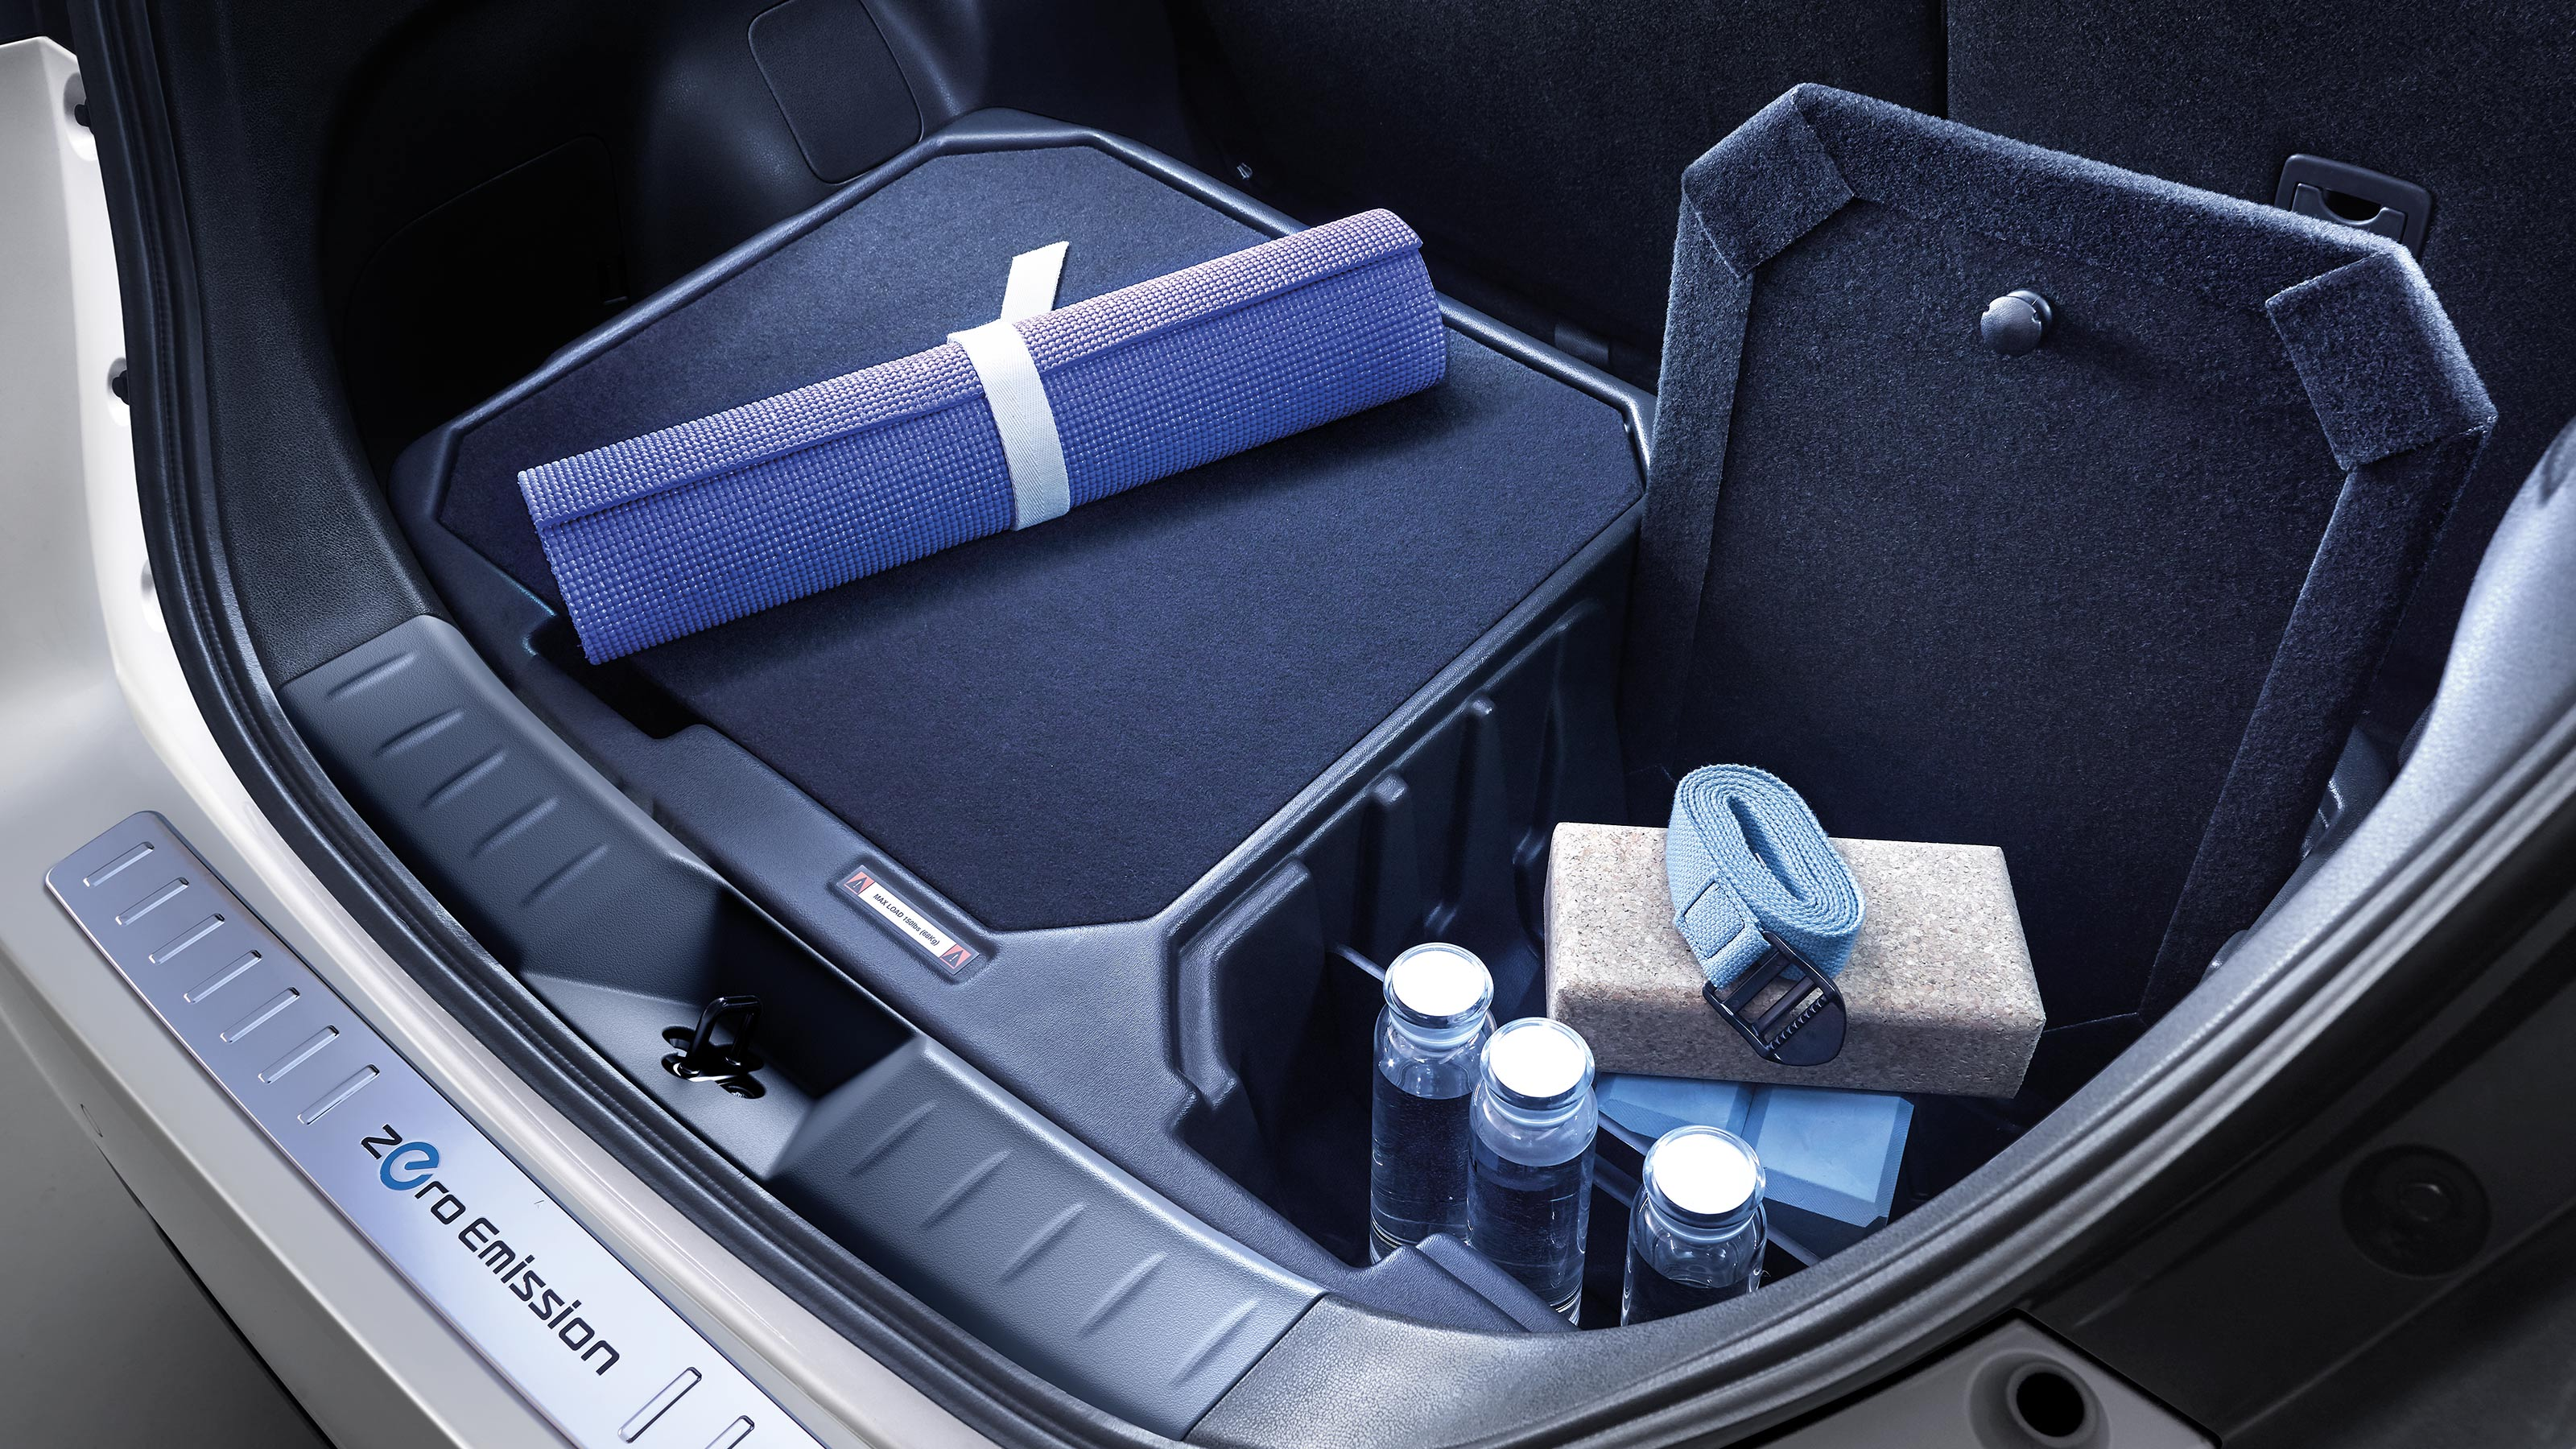 Nissan LEAF bumper protection and cargo organizer